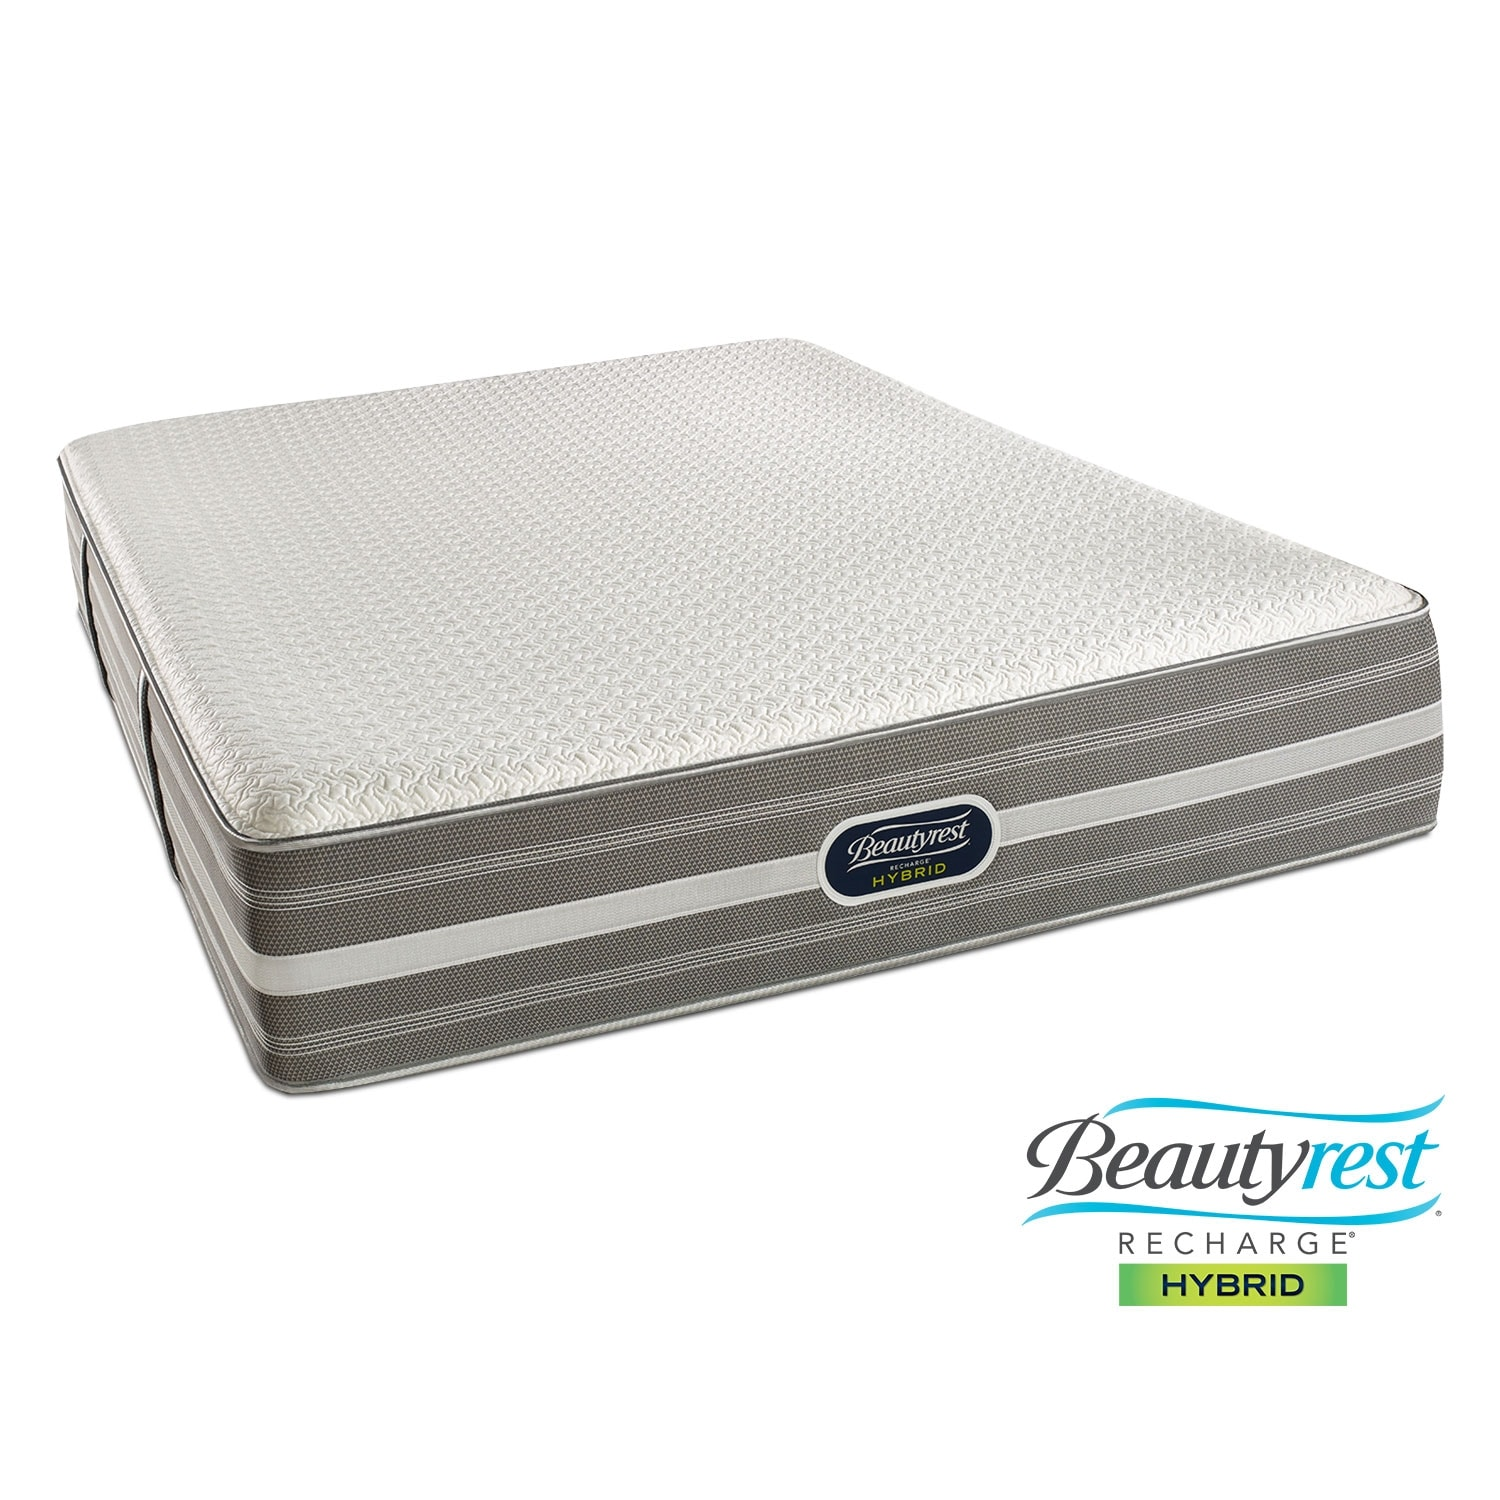 Mattresses and Bedding - Lamour Plush Twin XL Mattress